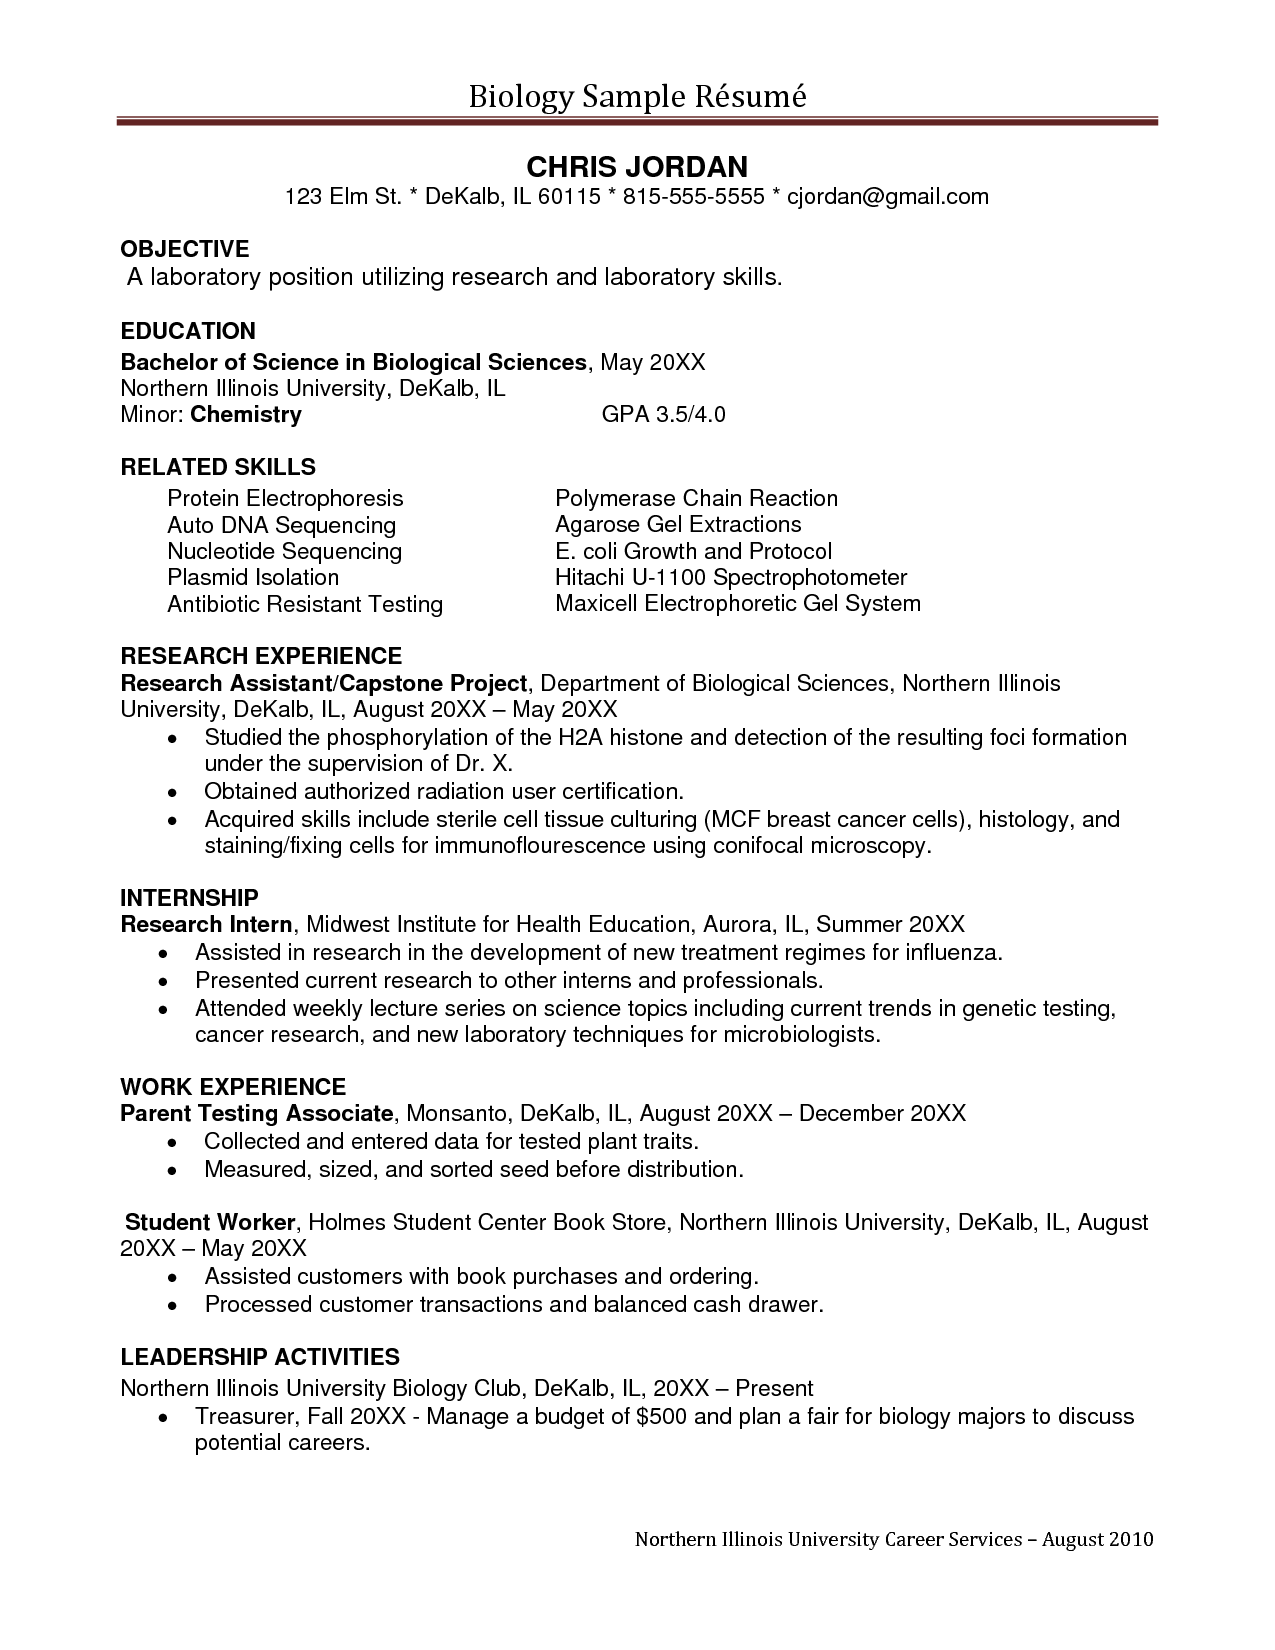 A Good Objective For Resume Sample Undergraduate Research Assistant Resume Sampleĺ